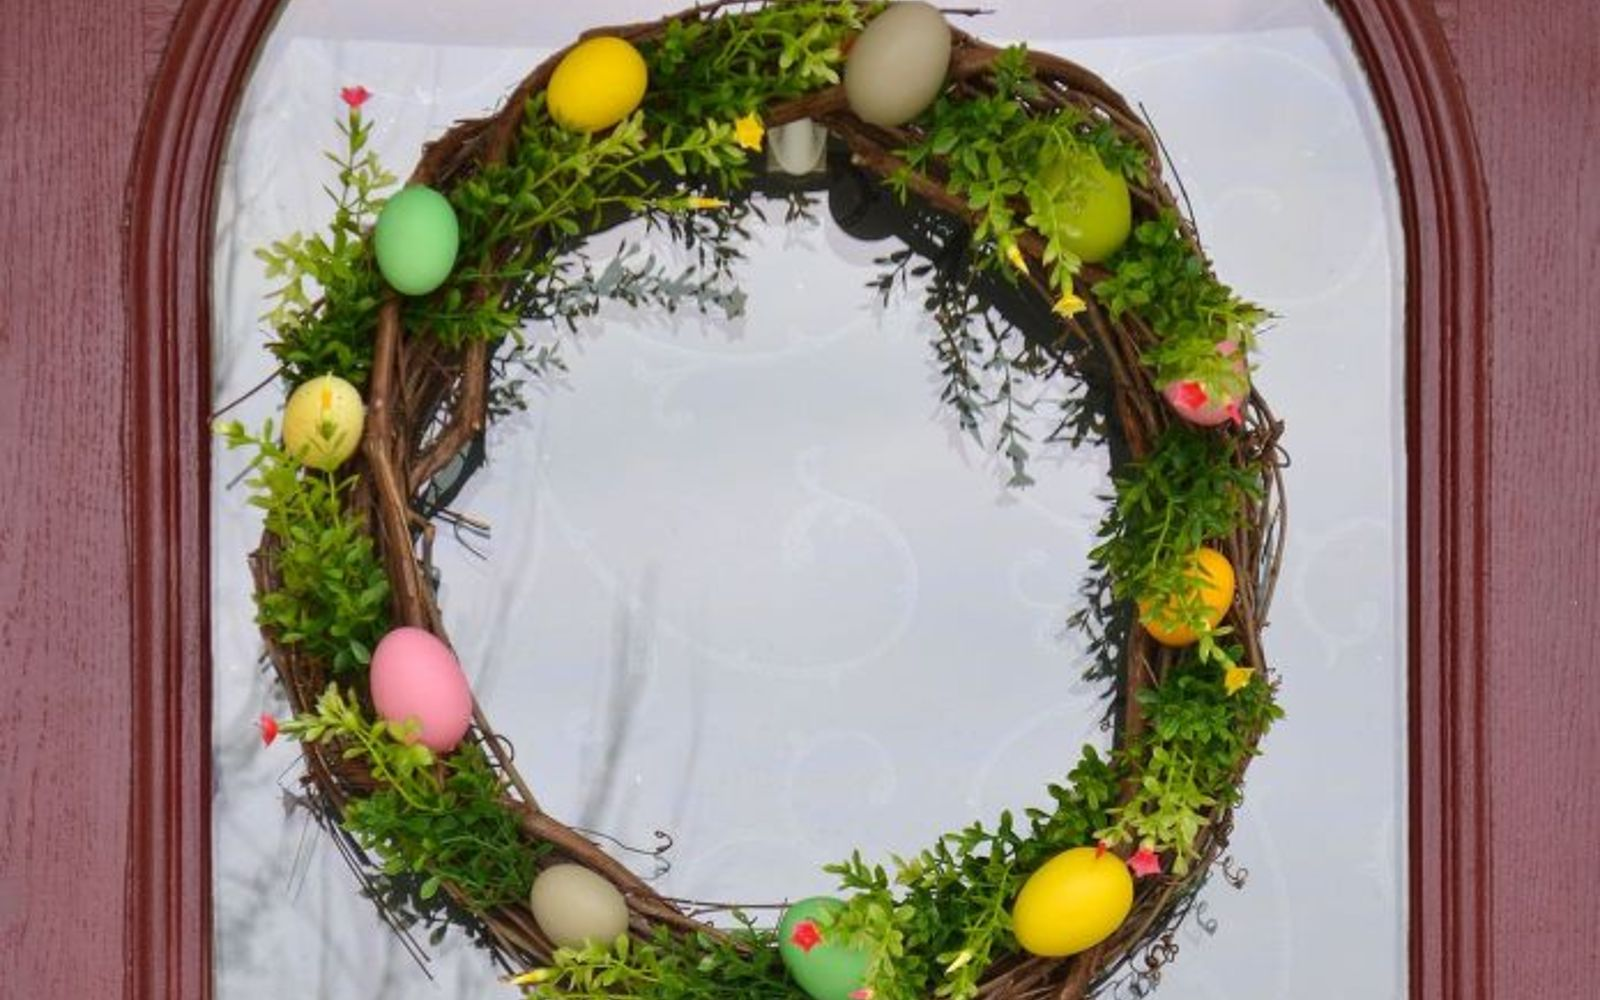 s 31 gorgeous spring wreaths that will make your neighbors smile, crafts, seasonal holiday decor, wreaths, Create a nest with faux stems and eggs